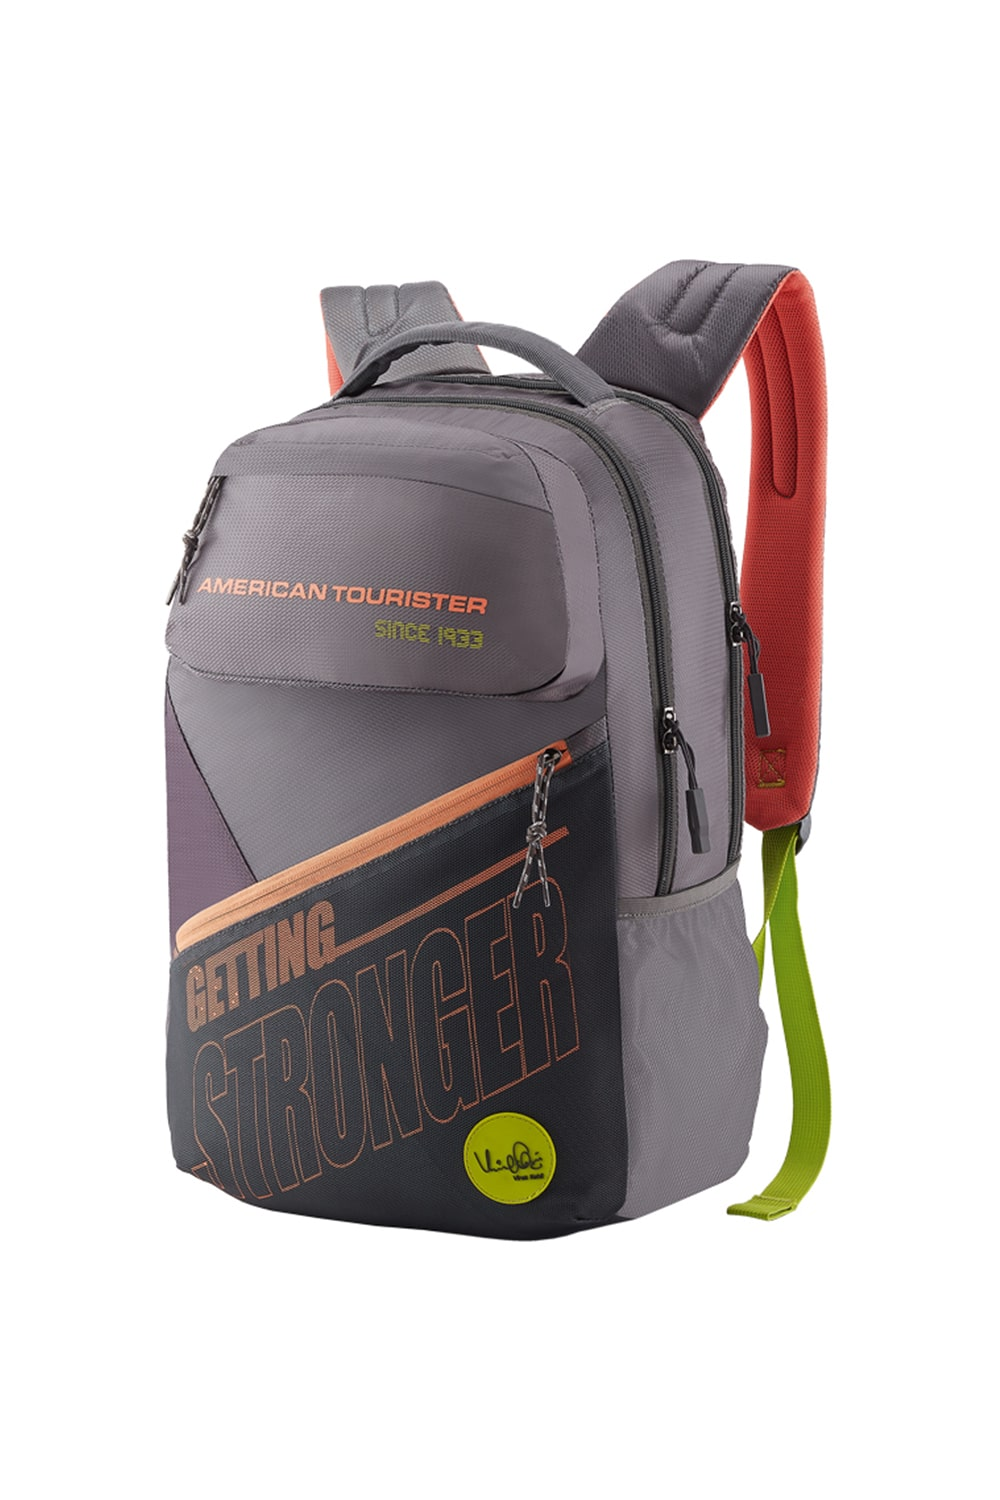 American Tourister Yooper 02 Backpack Travel - Grey